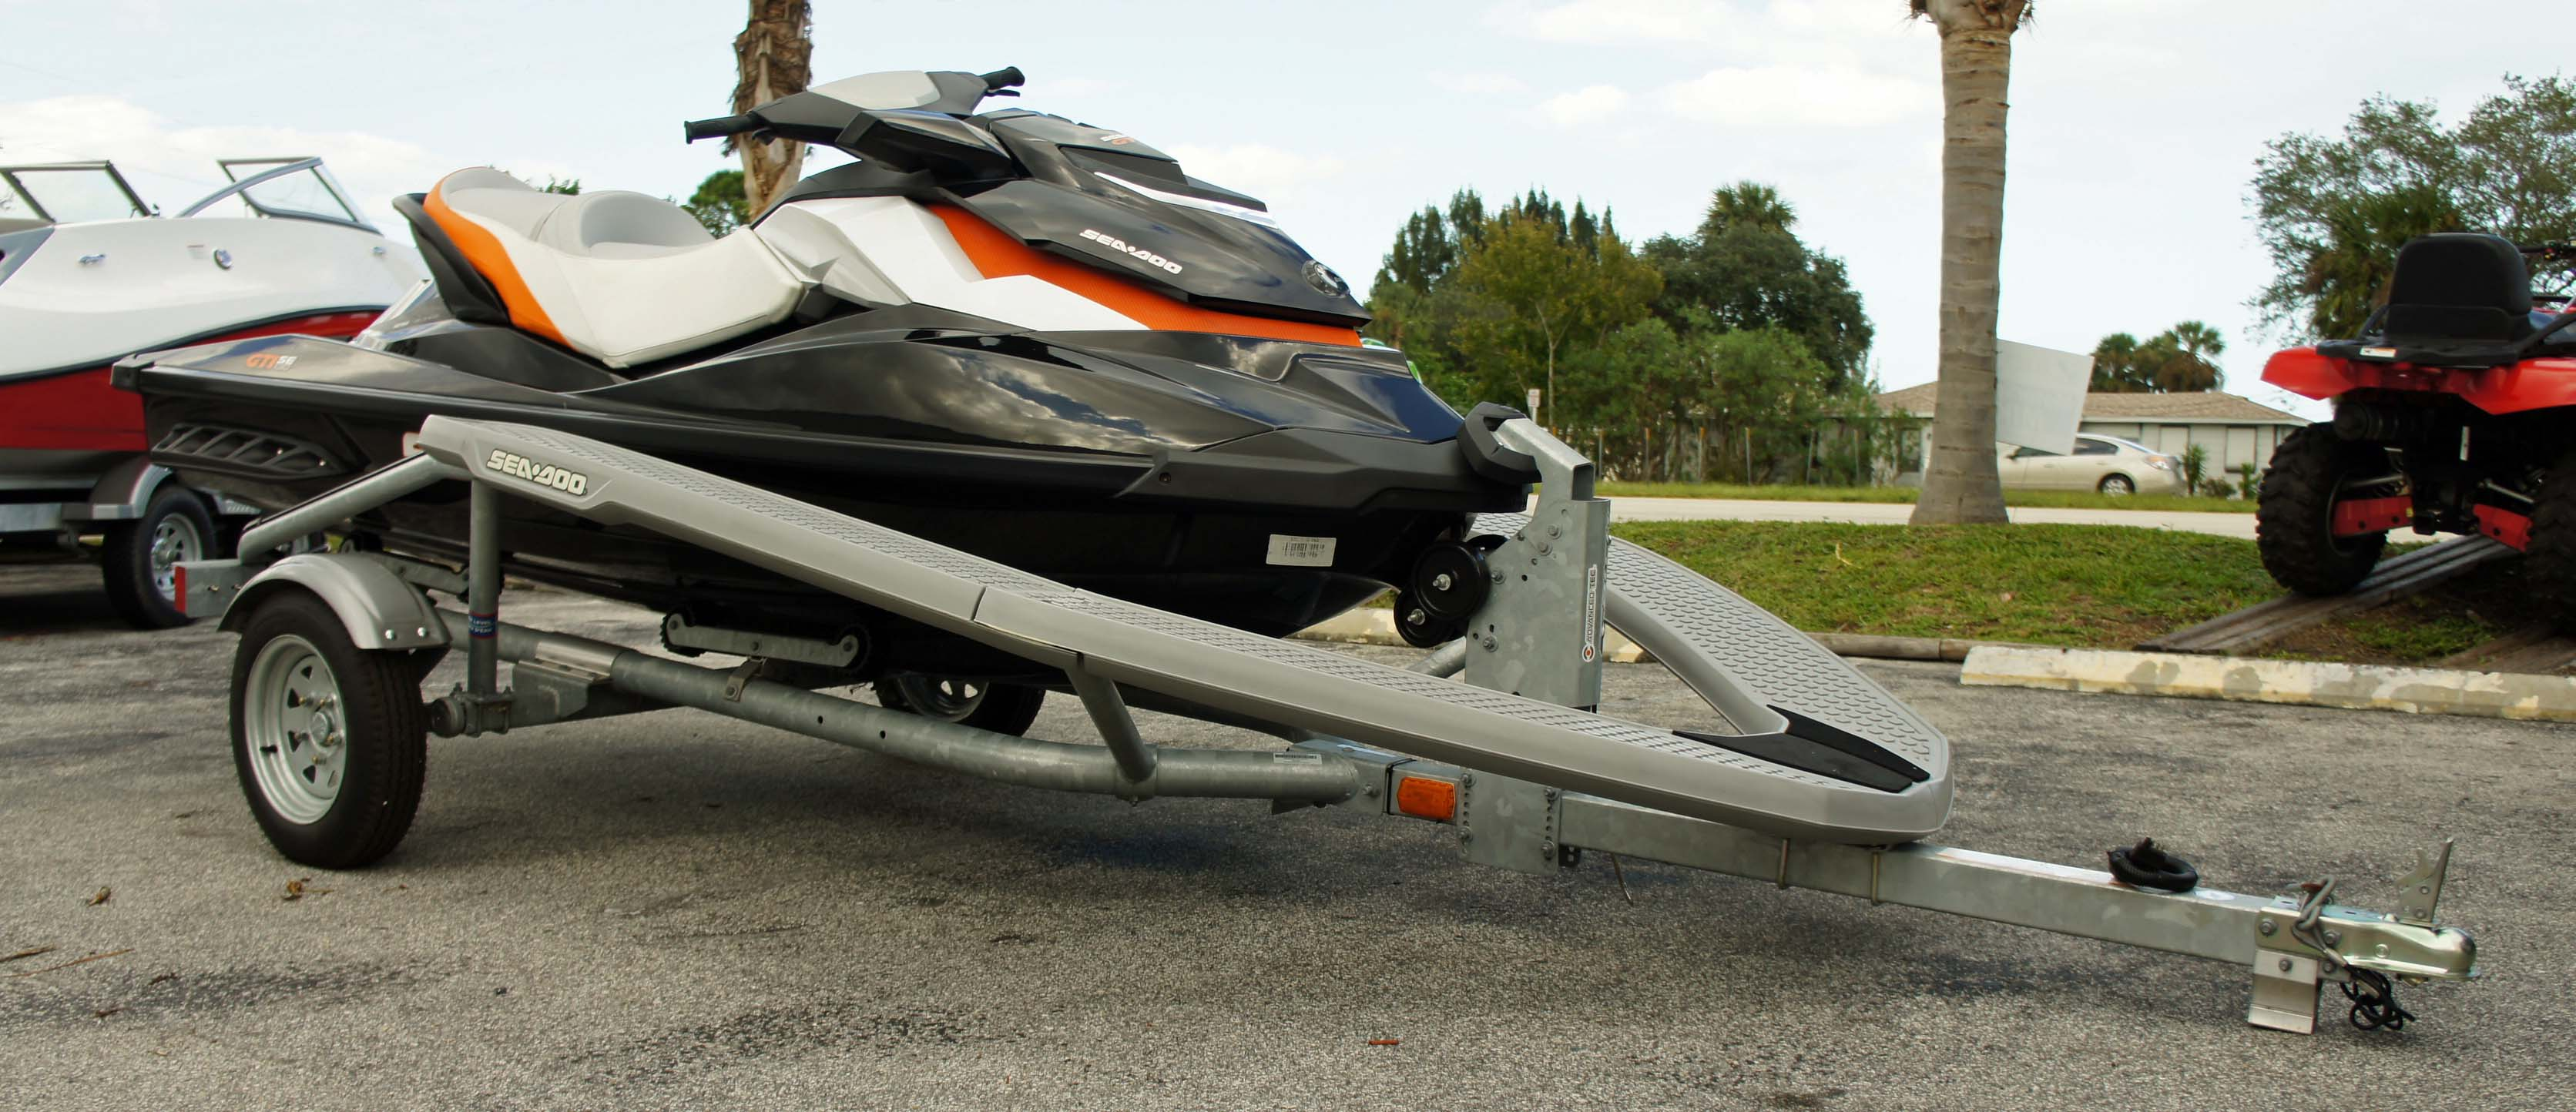 doctor doo ensure your sea doo is comfortable trailer care sea doo onboard. Black Bedroom Furniture Sets. Home Design Ideas